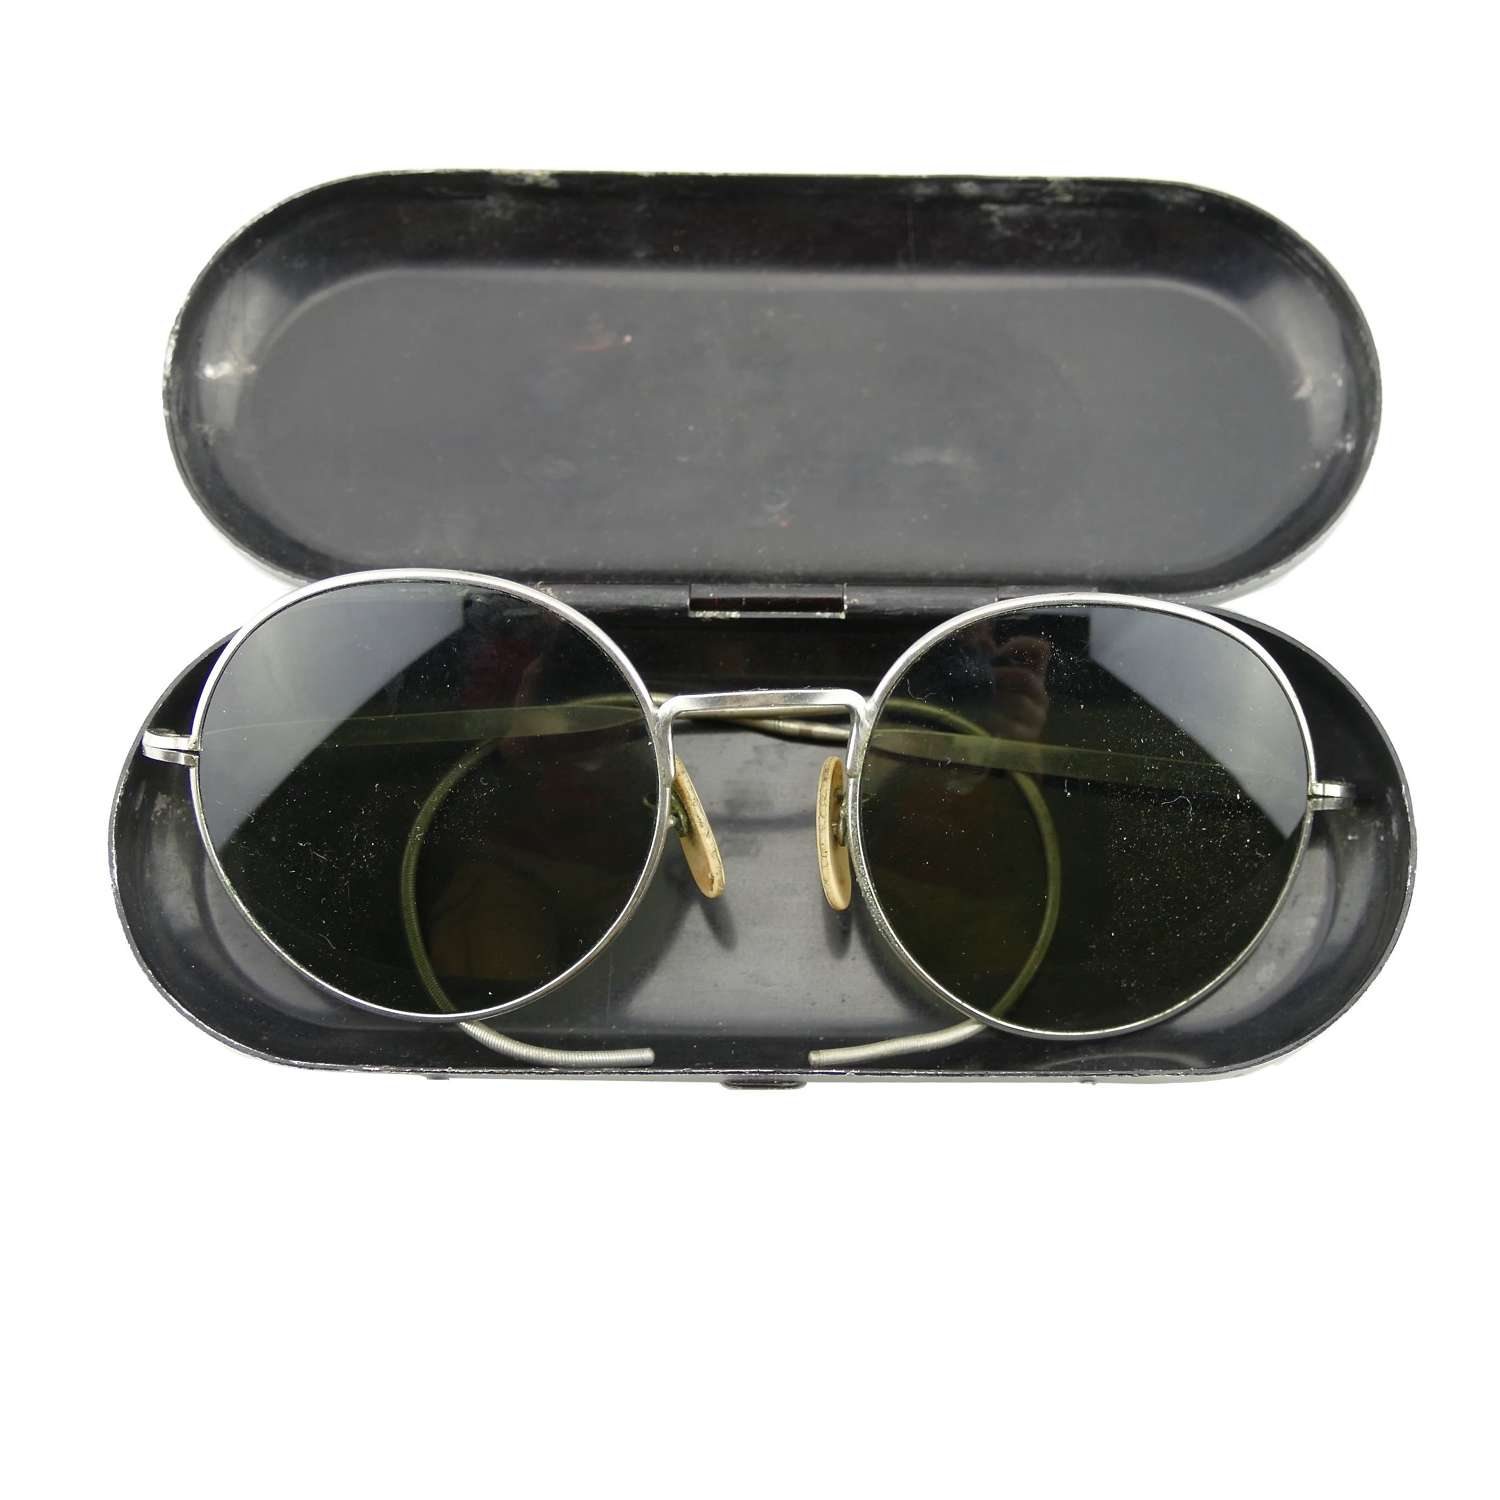 RAF Mk.VIII flying sunglasses, cased